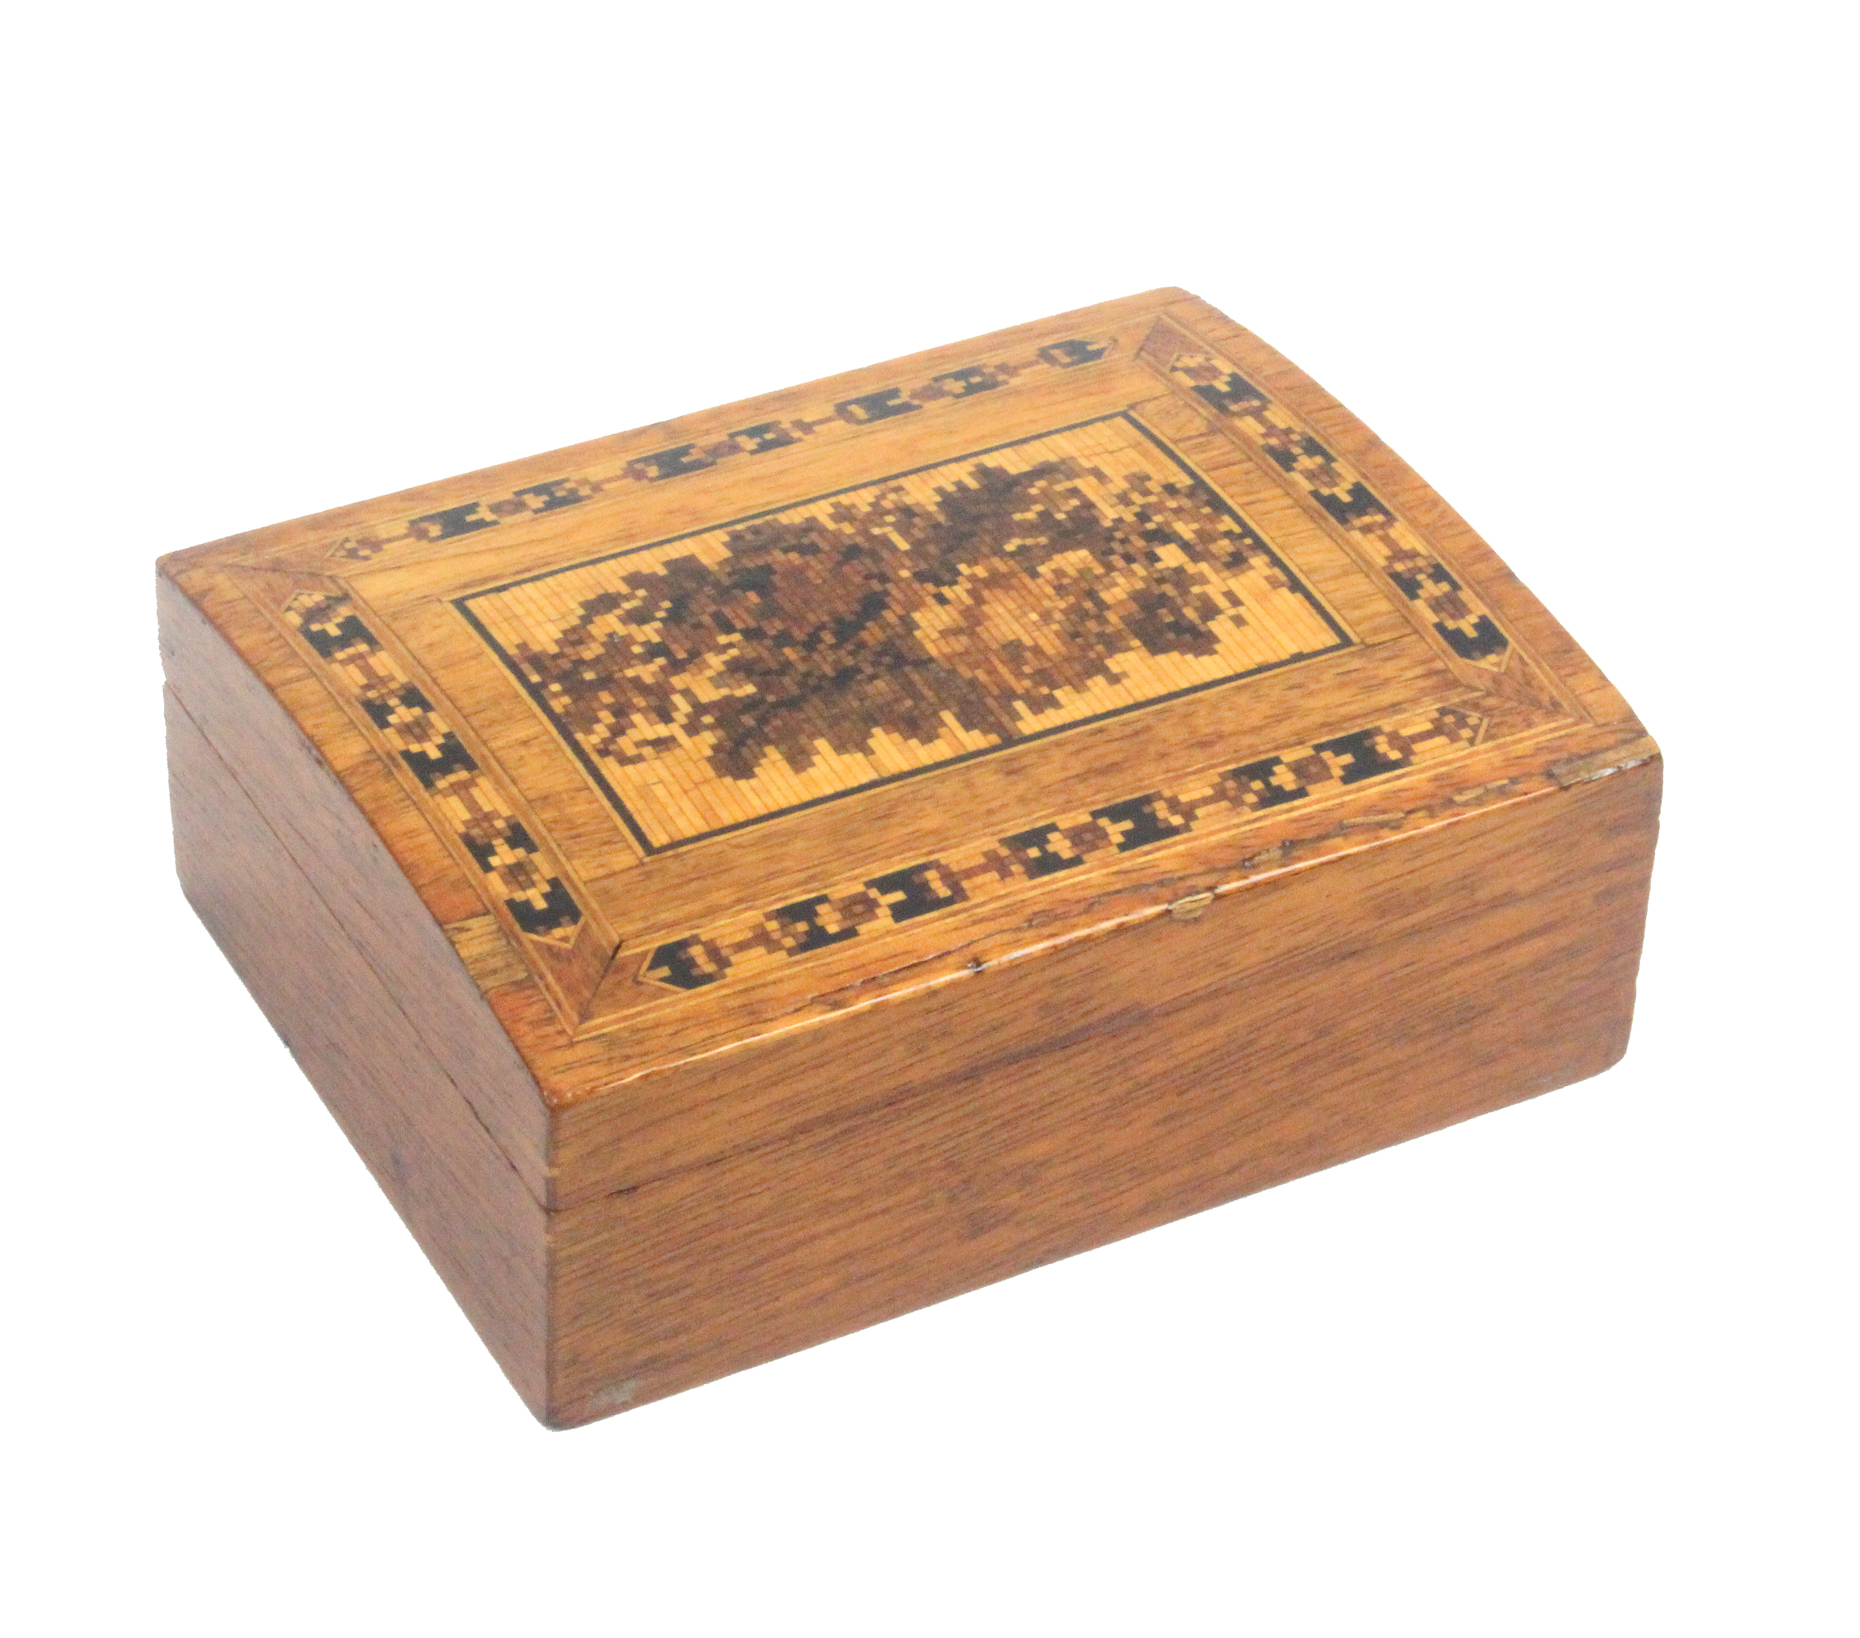 Lot 9 - An early 20th Tunbridge ware box by, The Tunbridge Wells Manufacturing Co, Ltd, of rectangular form,